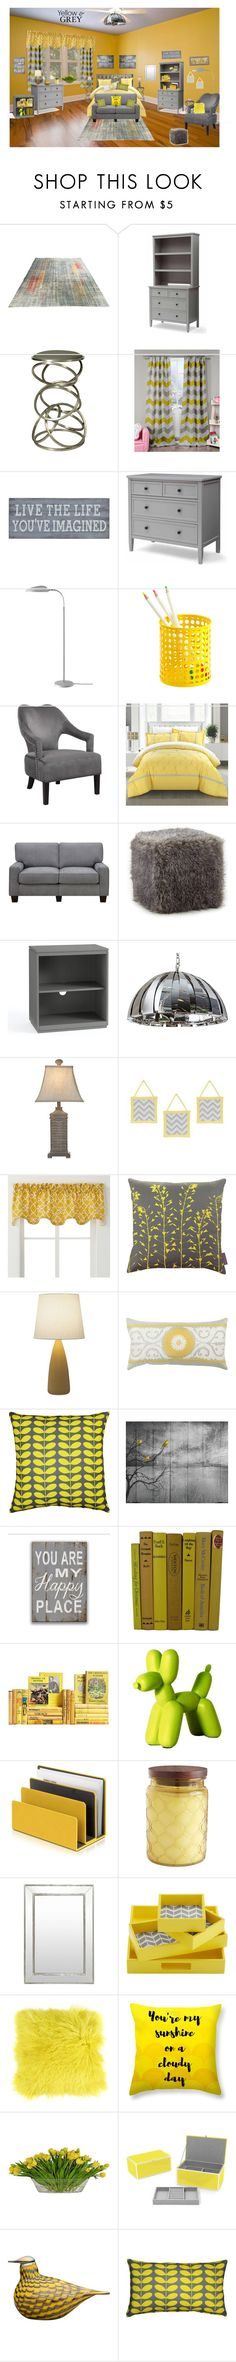 """""""Yellow & Gray Bedroom"""" by pinky-dee ❤ liked on Polyvore featuring interior, interiors, interior design, home, home decor, interior decorating, ZEKI, Pastel, Duck River Textile and Pier 1 Imports"""